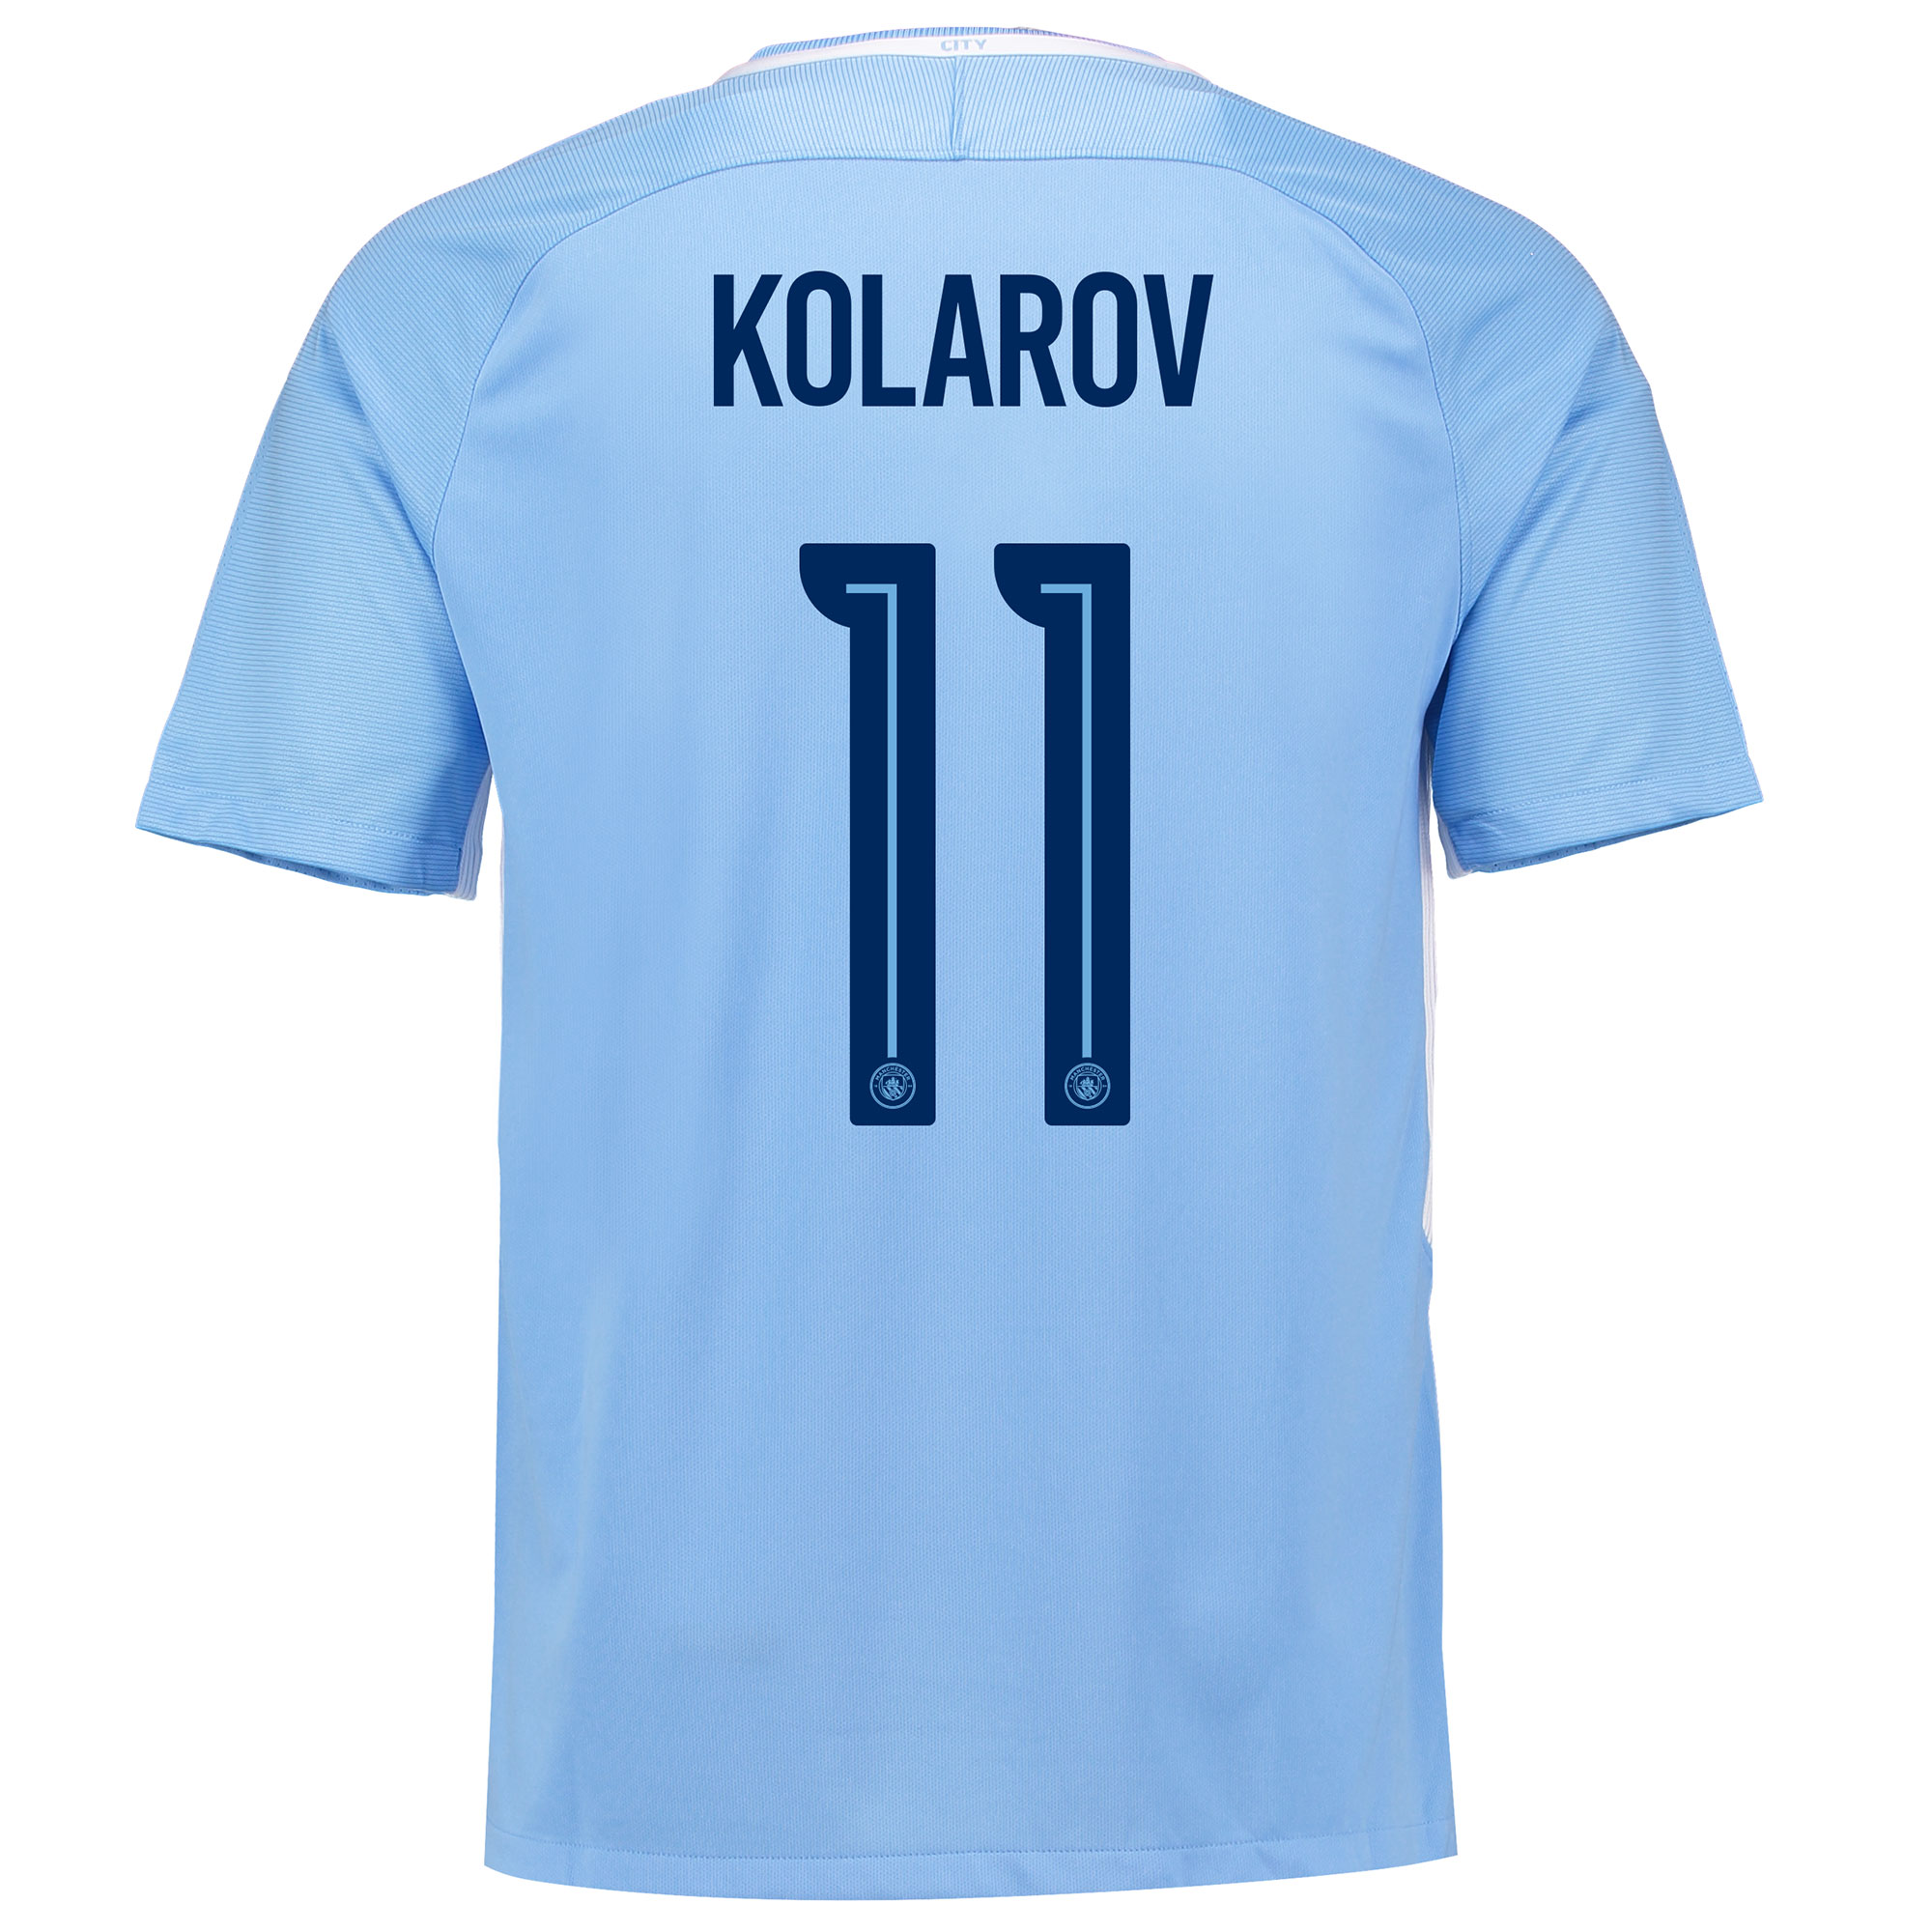 Manchester City Home Stadium Cup Shirt 2017-18 with Kolarov 11 printin